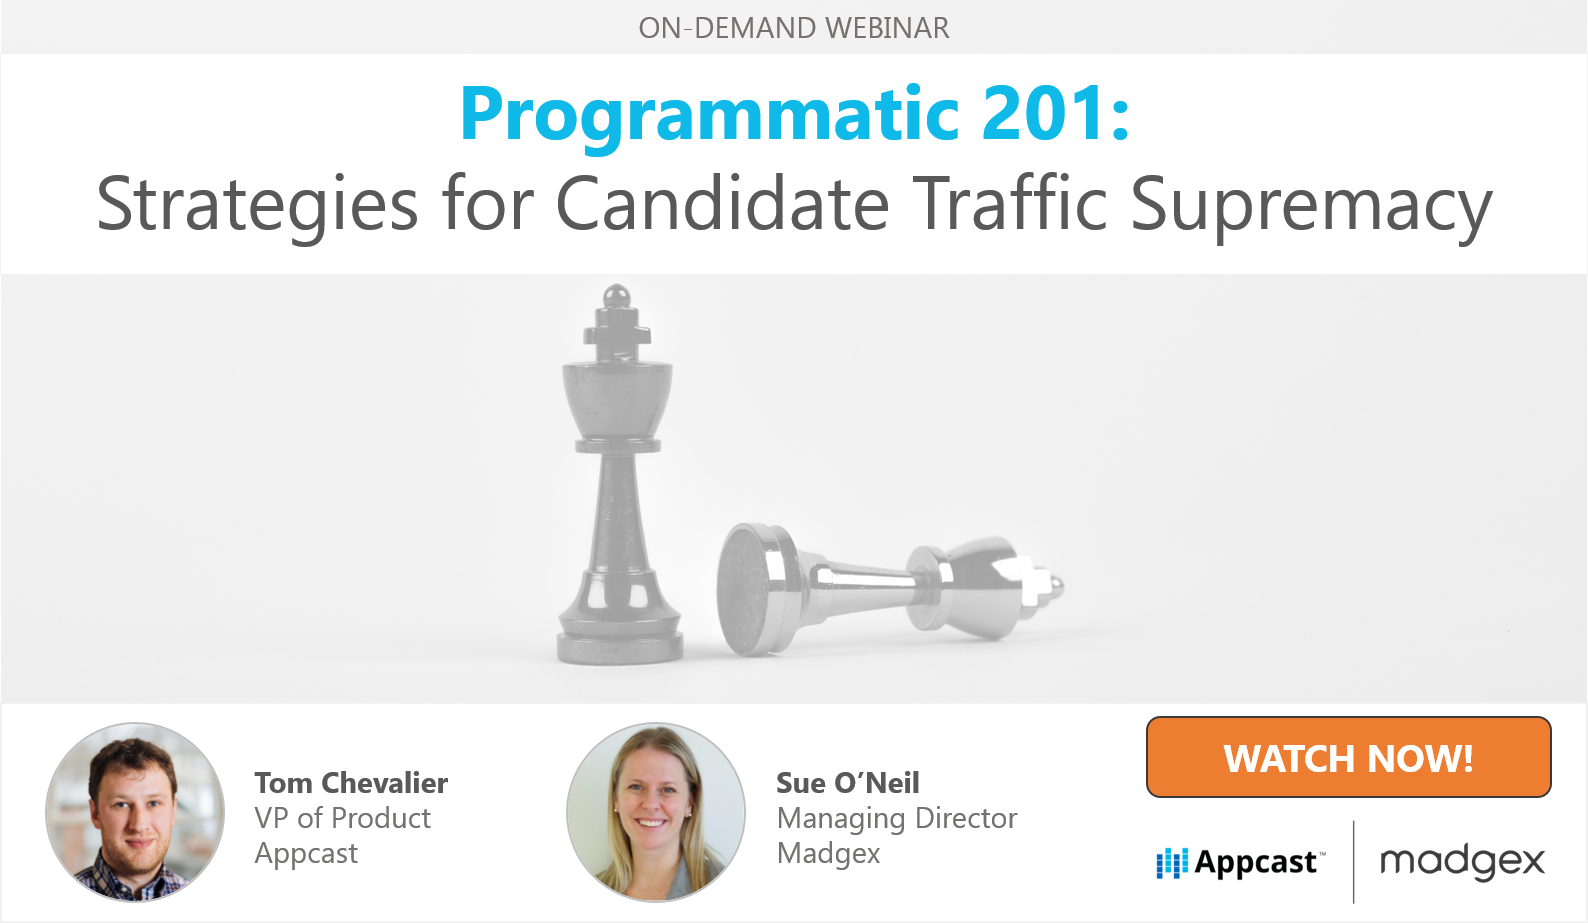 Programmatic 201: Strategies for Candidate Traffic Supremacy